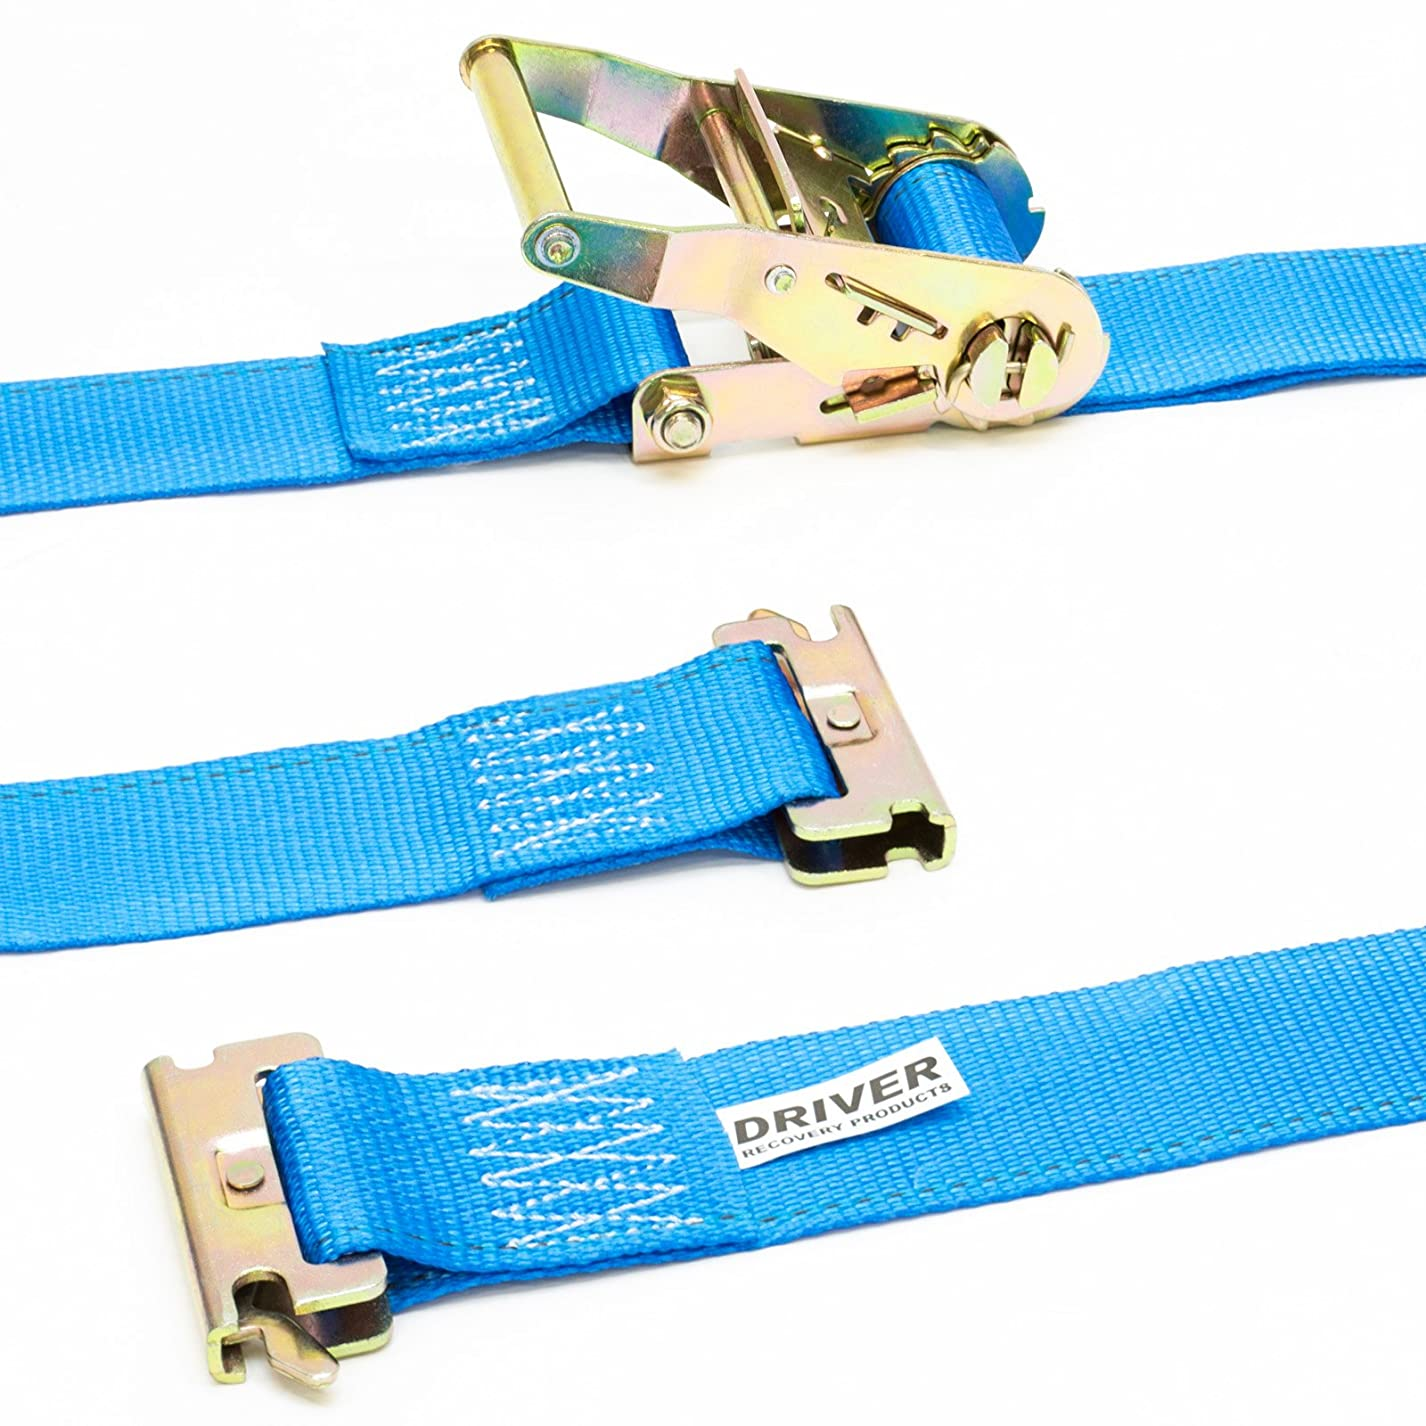 Driver Recovery 2 ETrack Ratchet Tie-Down Straps - 2